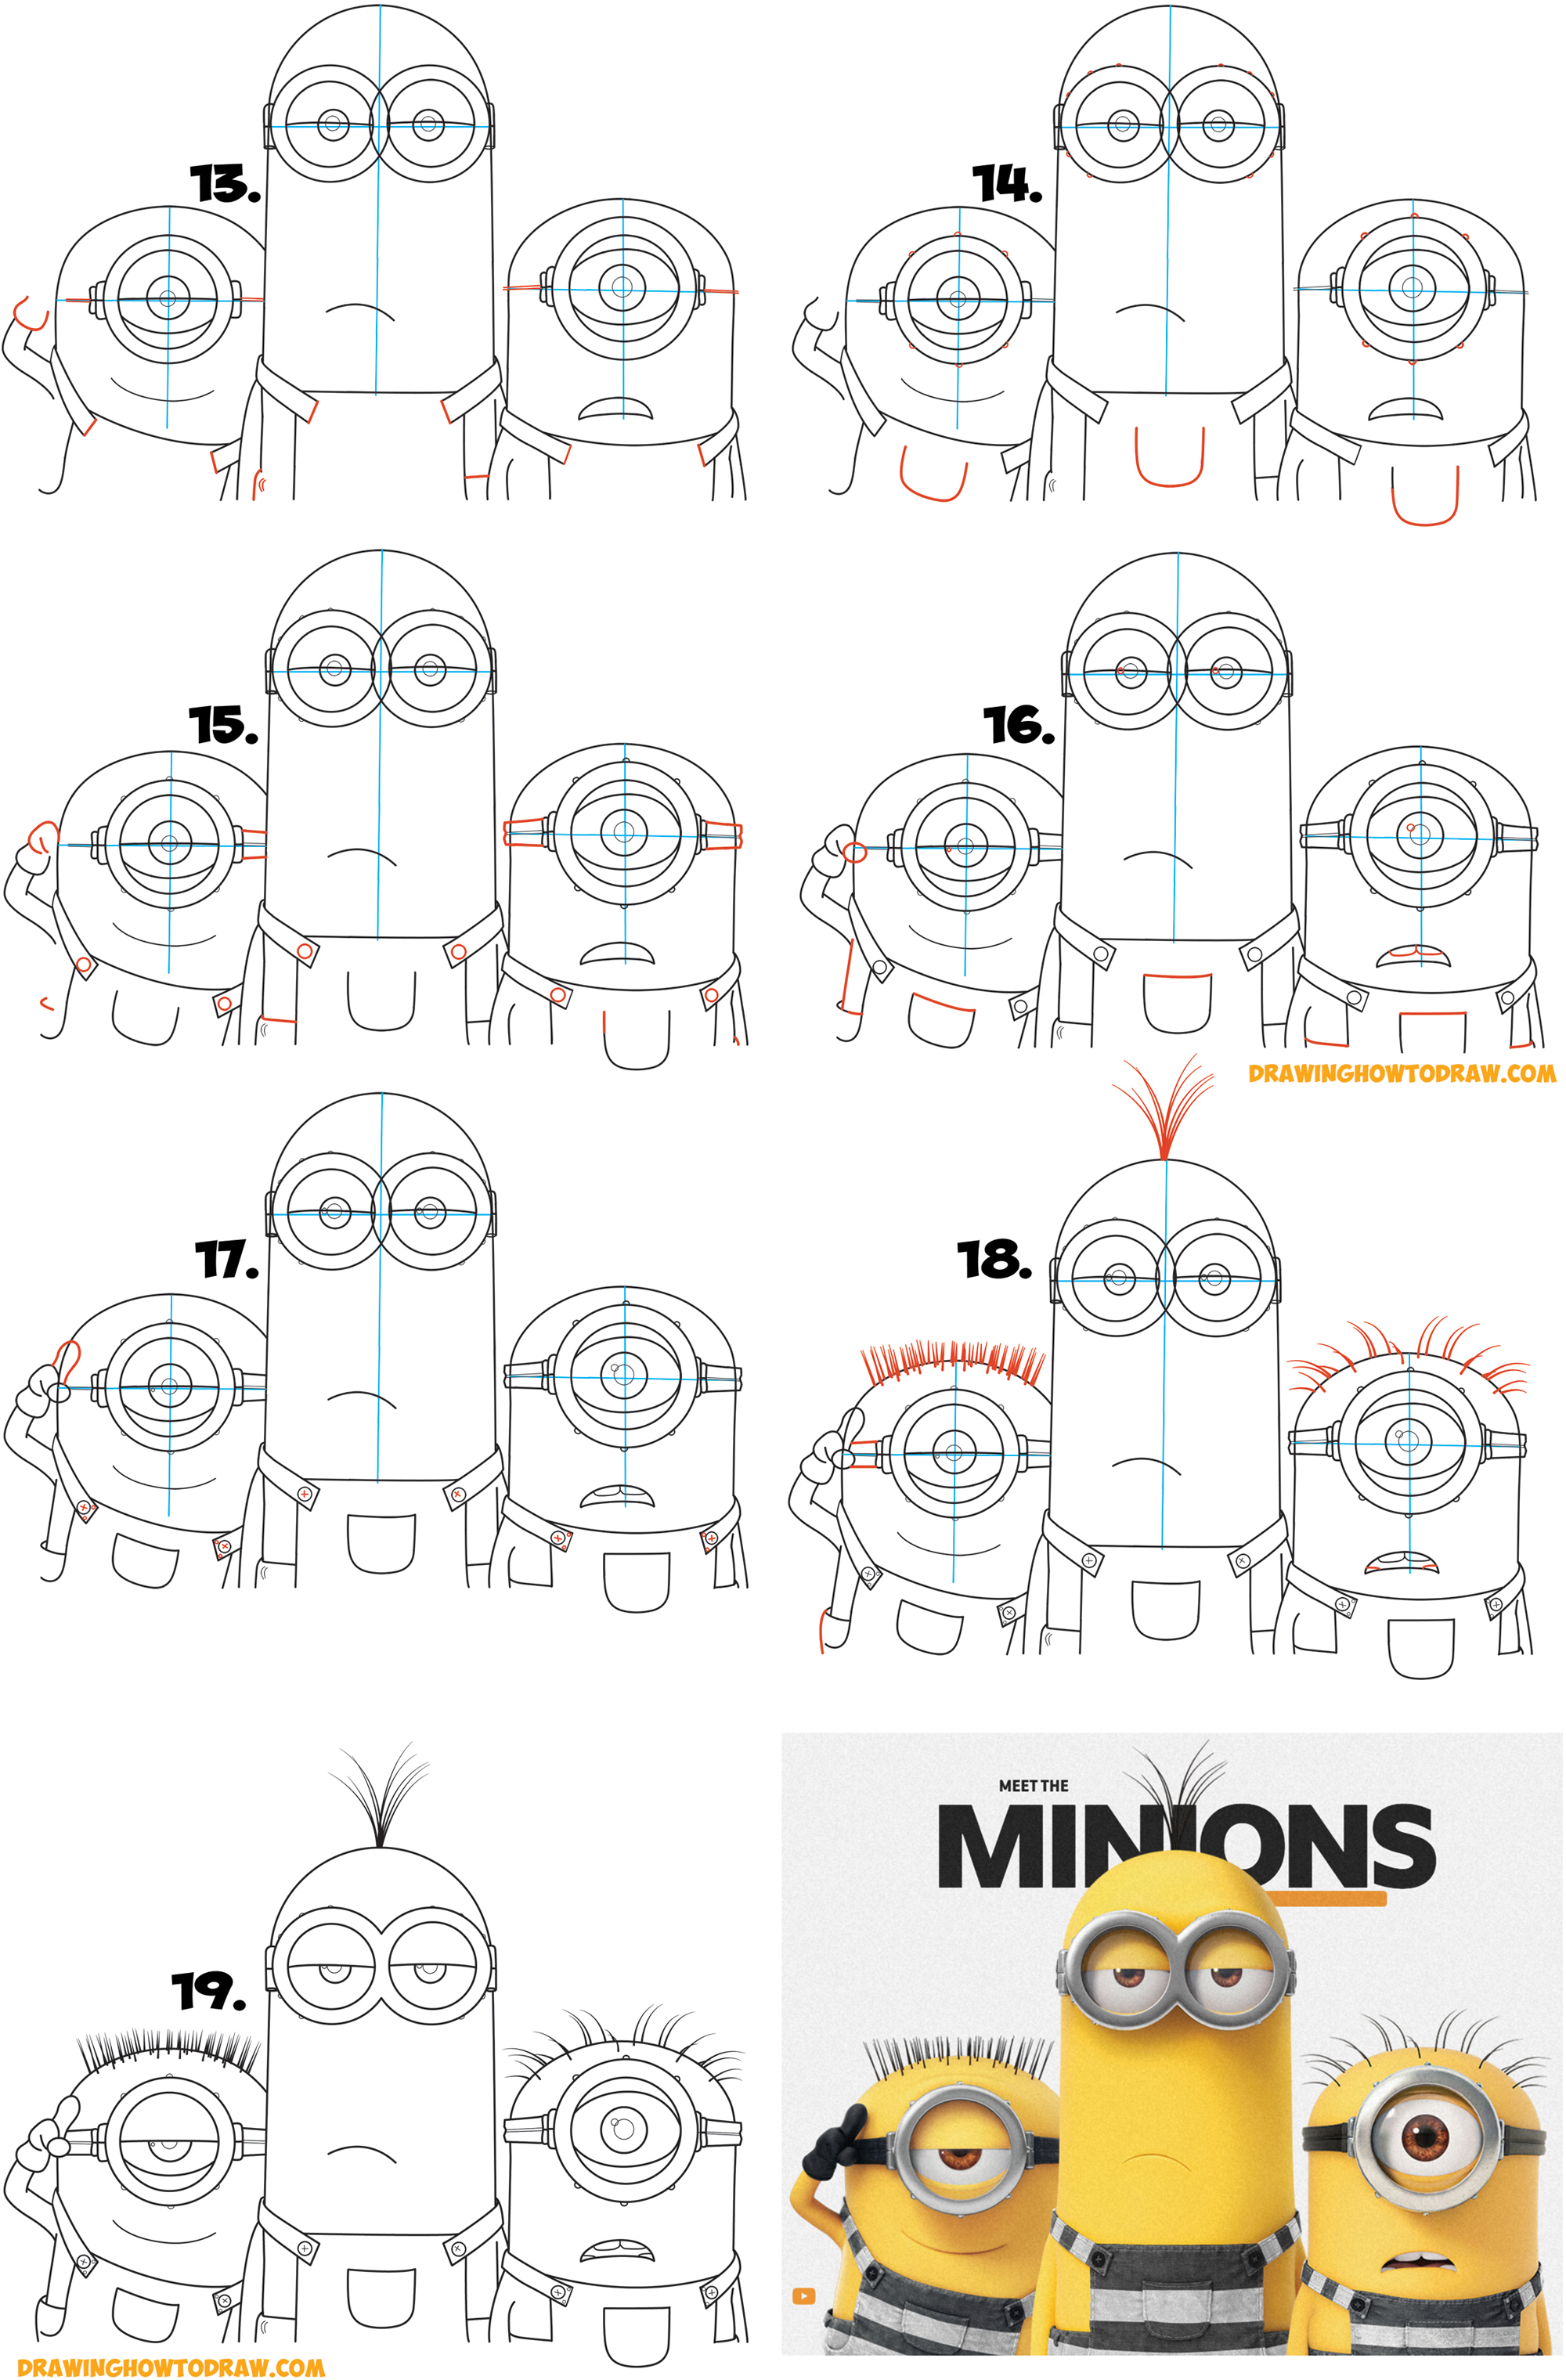 Learn How to Draw the Minions from Despicable Me 3 Simple Steps Drawing Lesson for Children (Maybe Kevin, Carl, & Jerry)